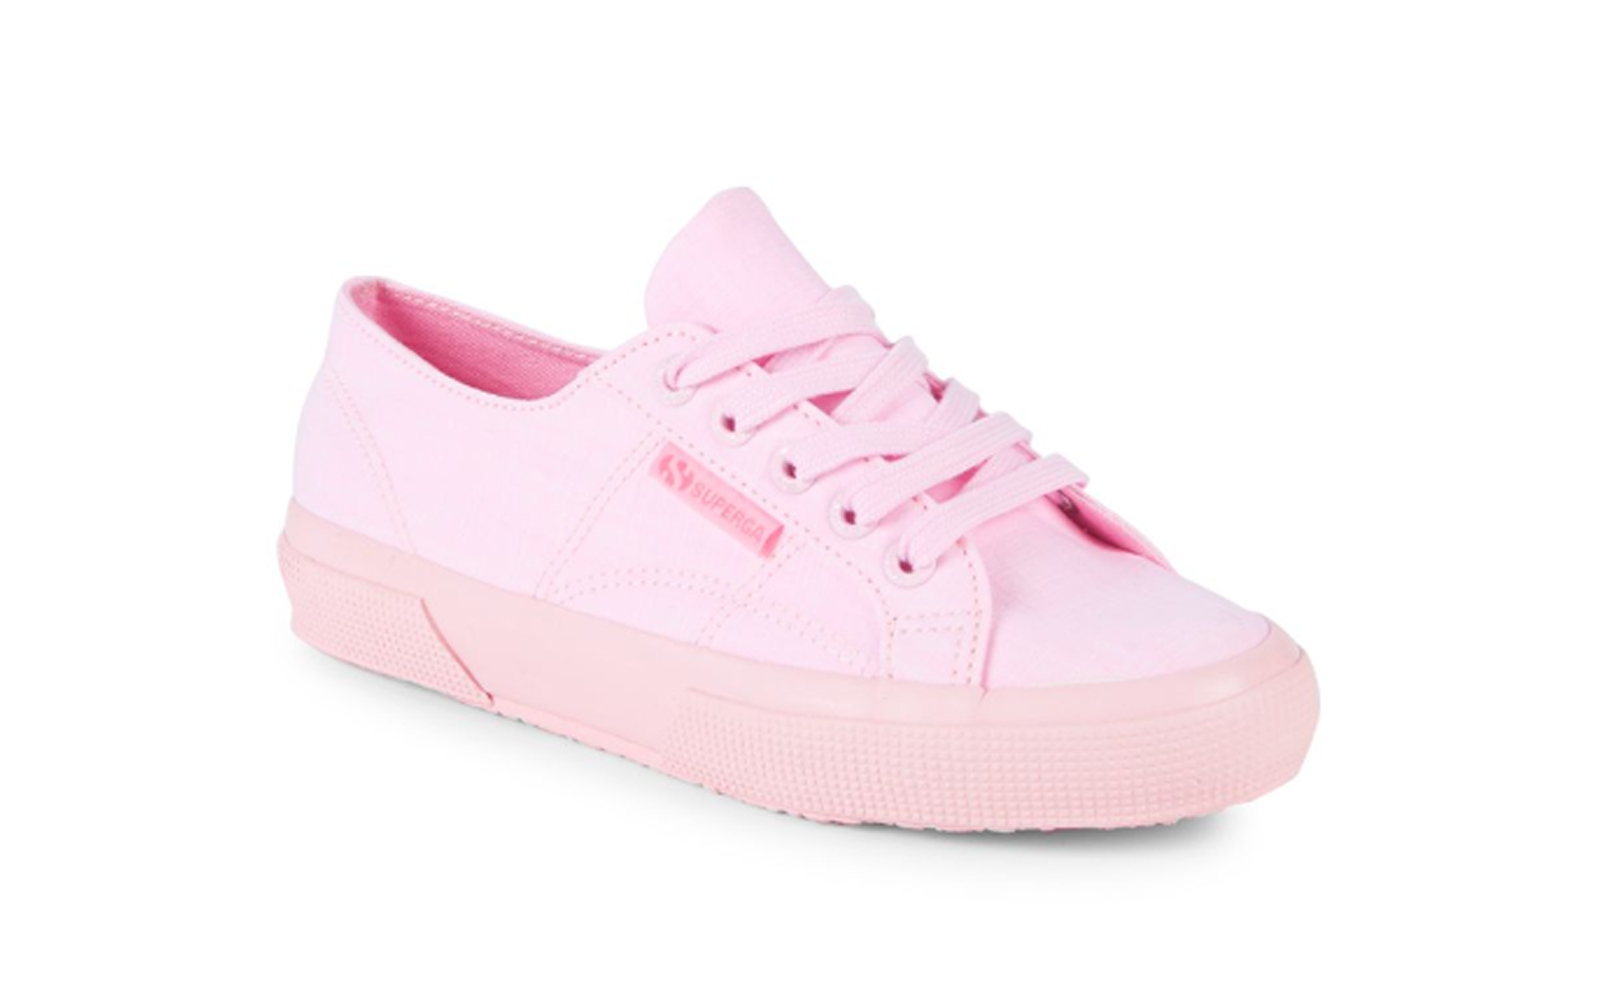 buy online 8899a d0cba Kate Middleton's Favorite Sneaker Brand Is on Super-sale ...